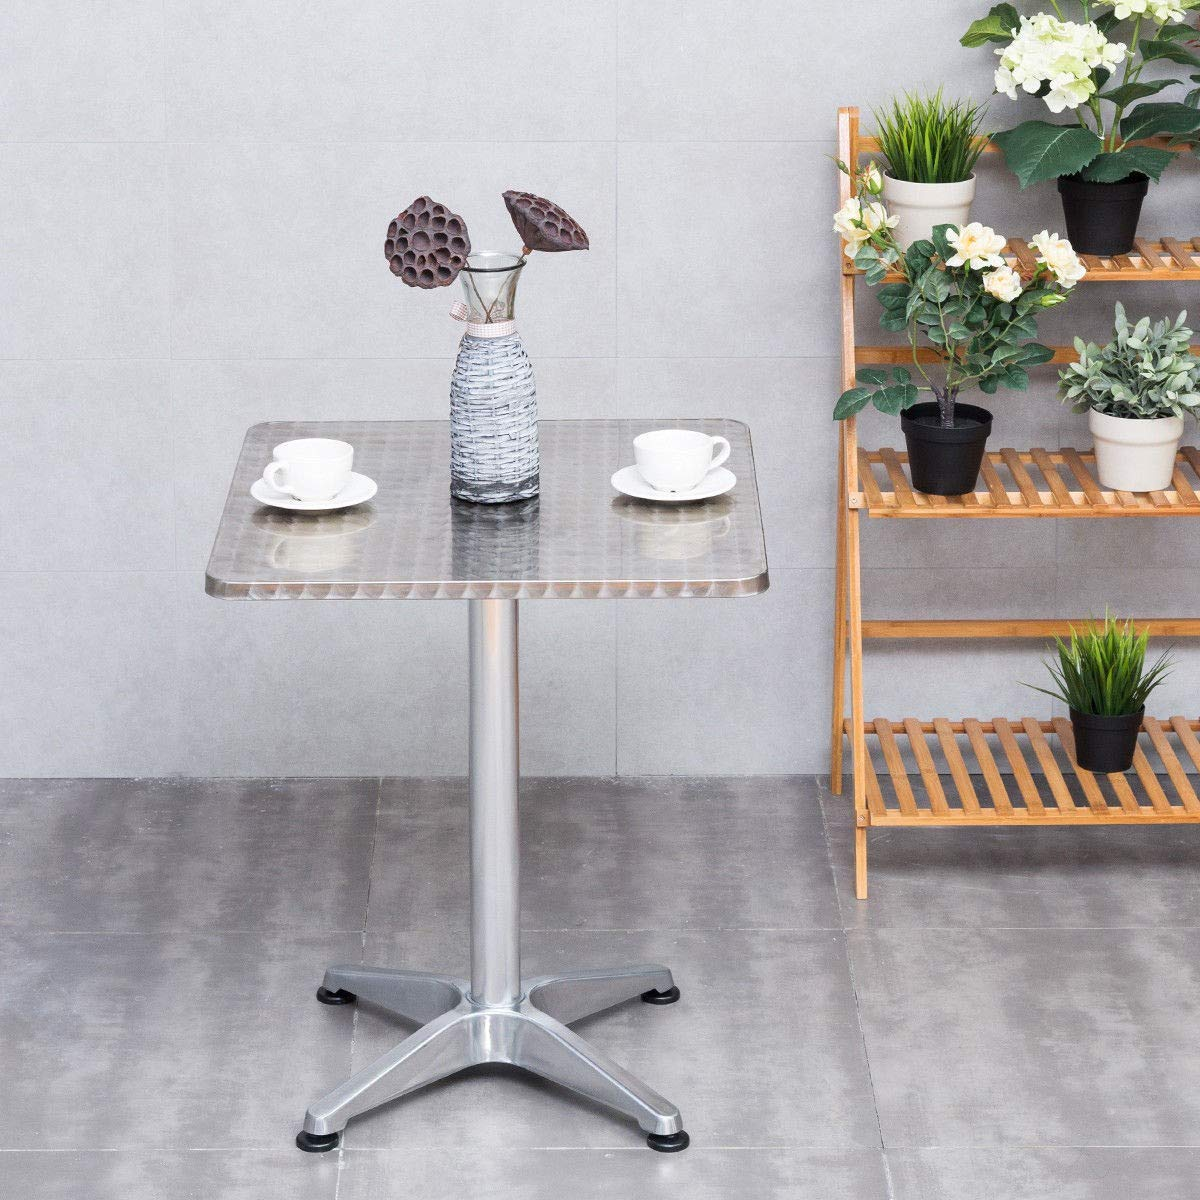 EZ FunShell HW56167 23 1/2'' Stainless Steel Aluminium Square Cafe Bistro Dining Table, Silver